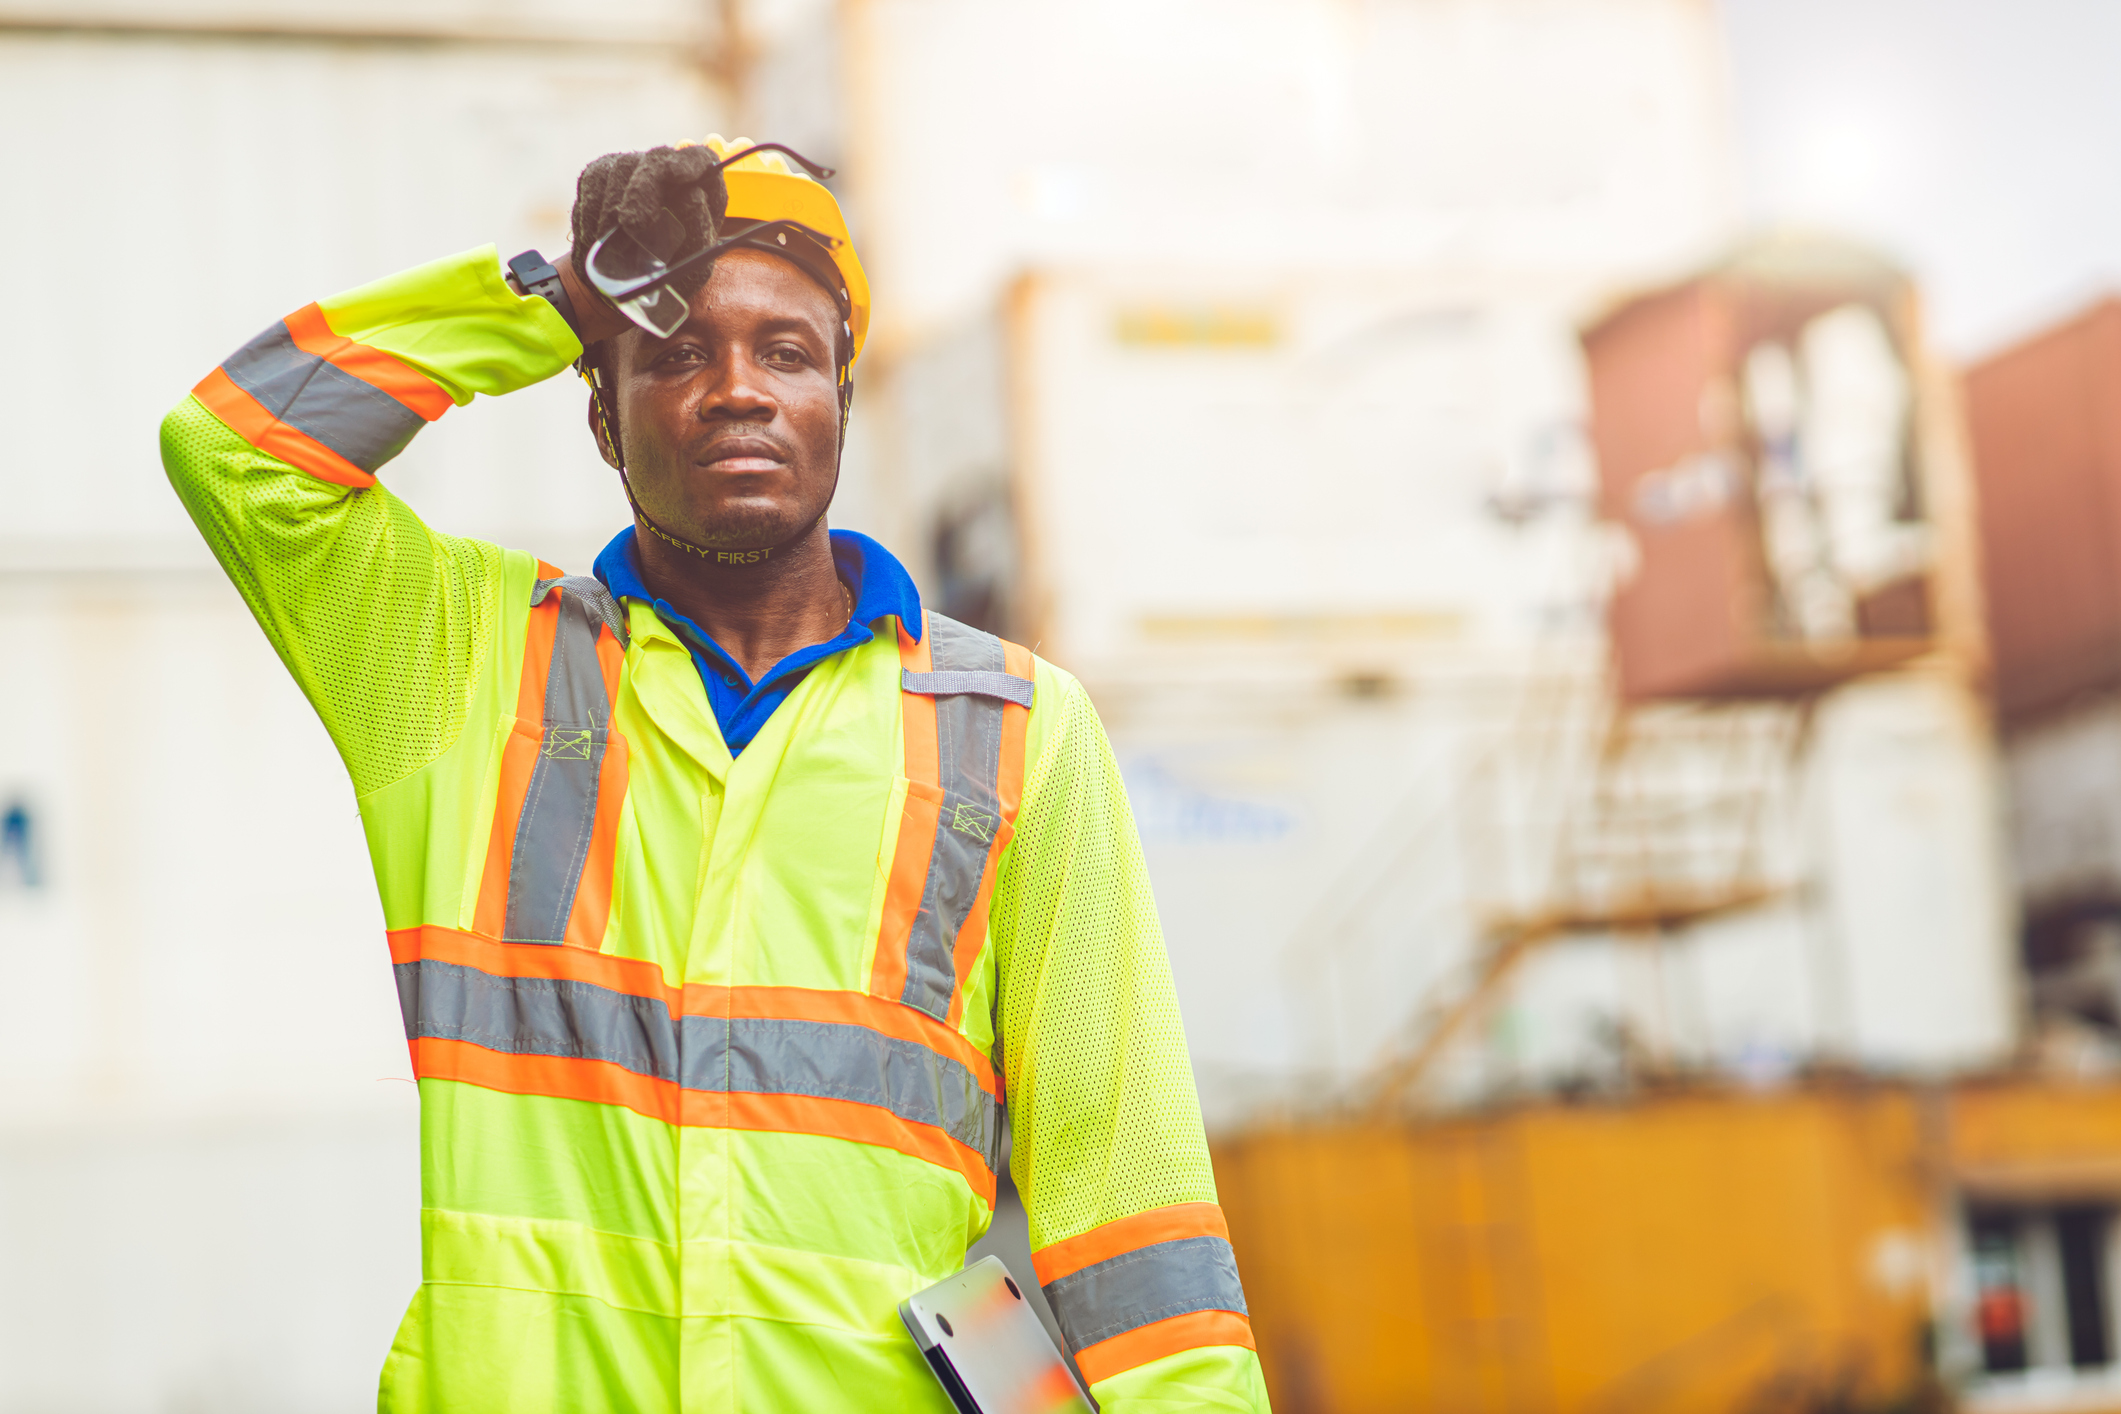 Construction worker, tired stressed worker sweating from hot weather in summer working in port goods cargo shipping logistic ground